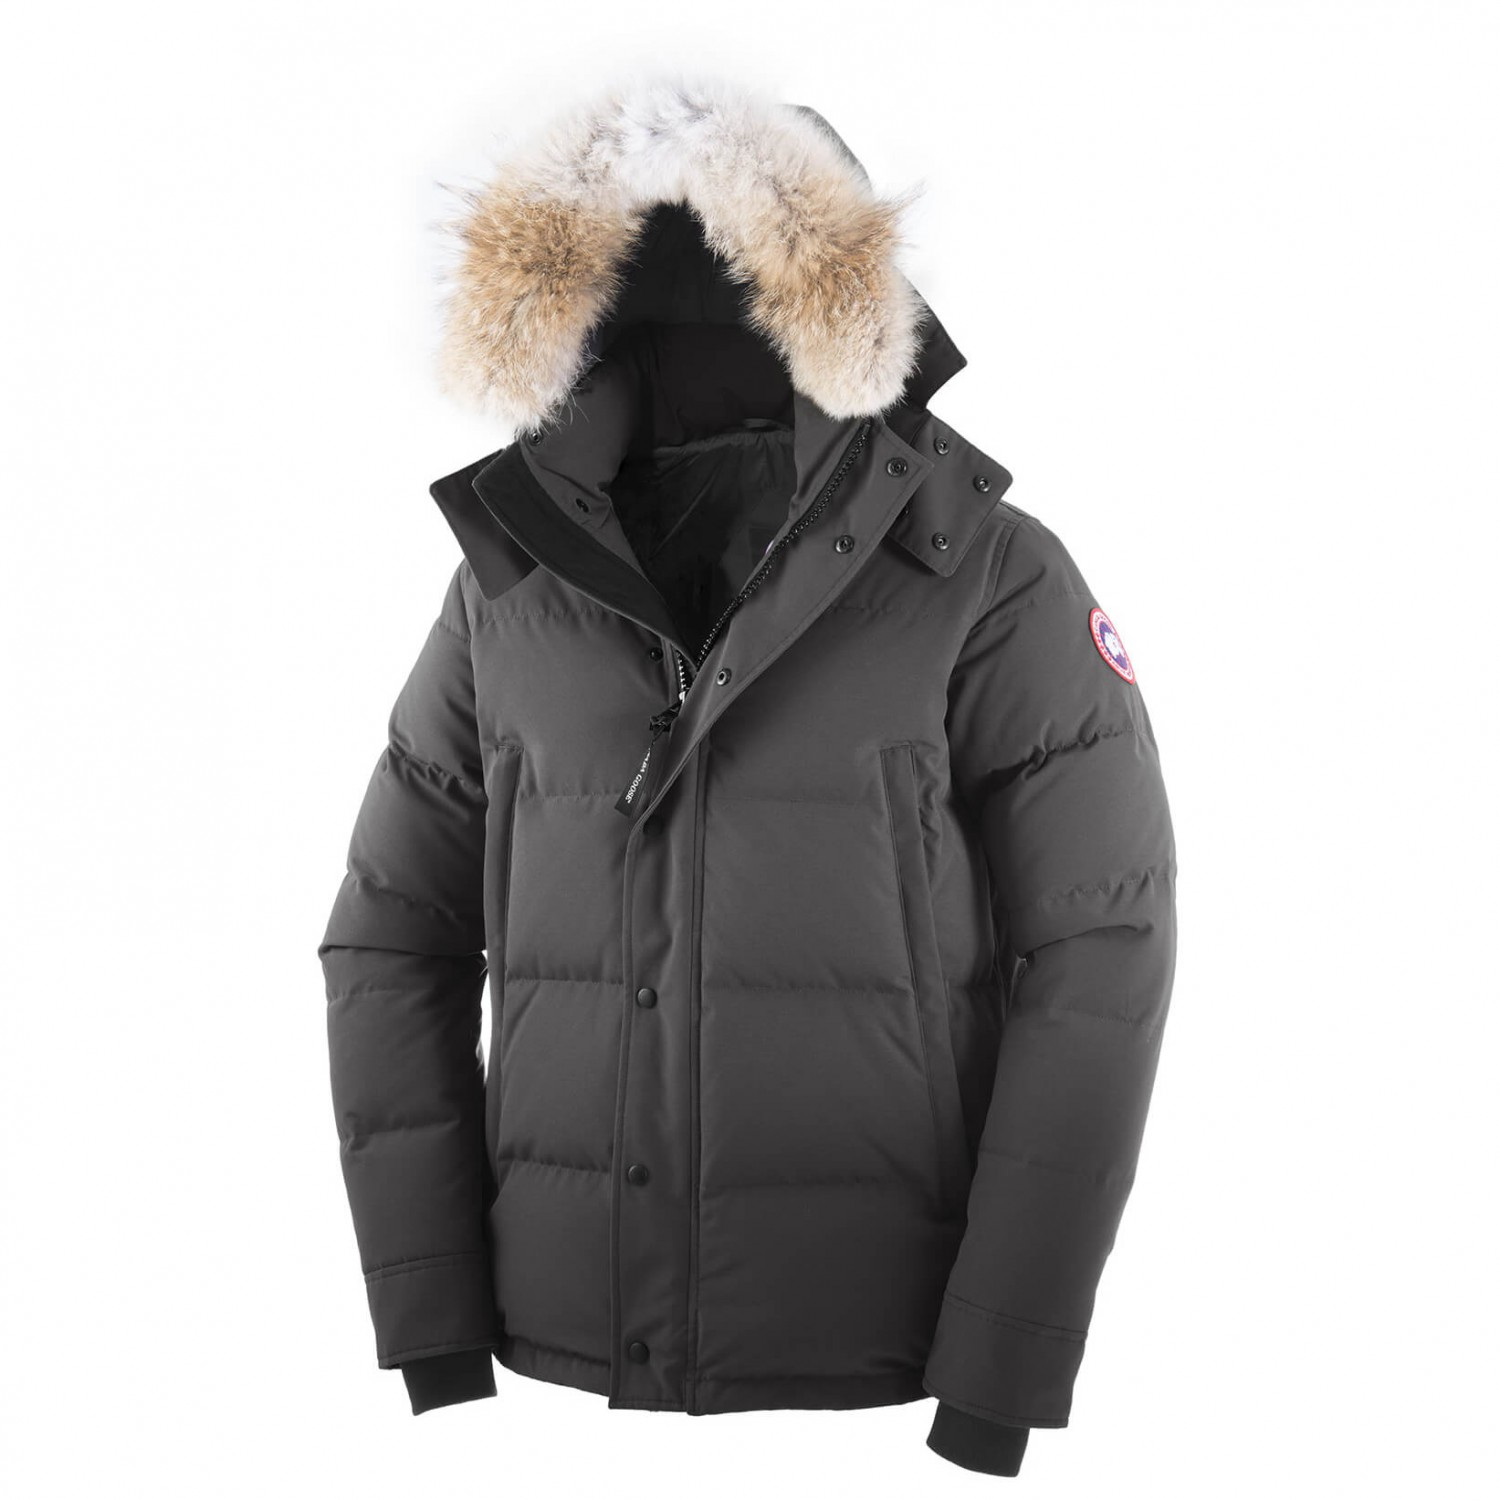 winter jacket not canada goose